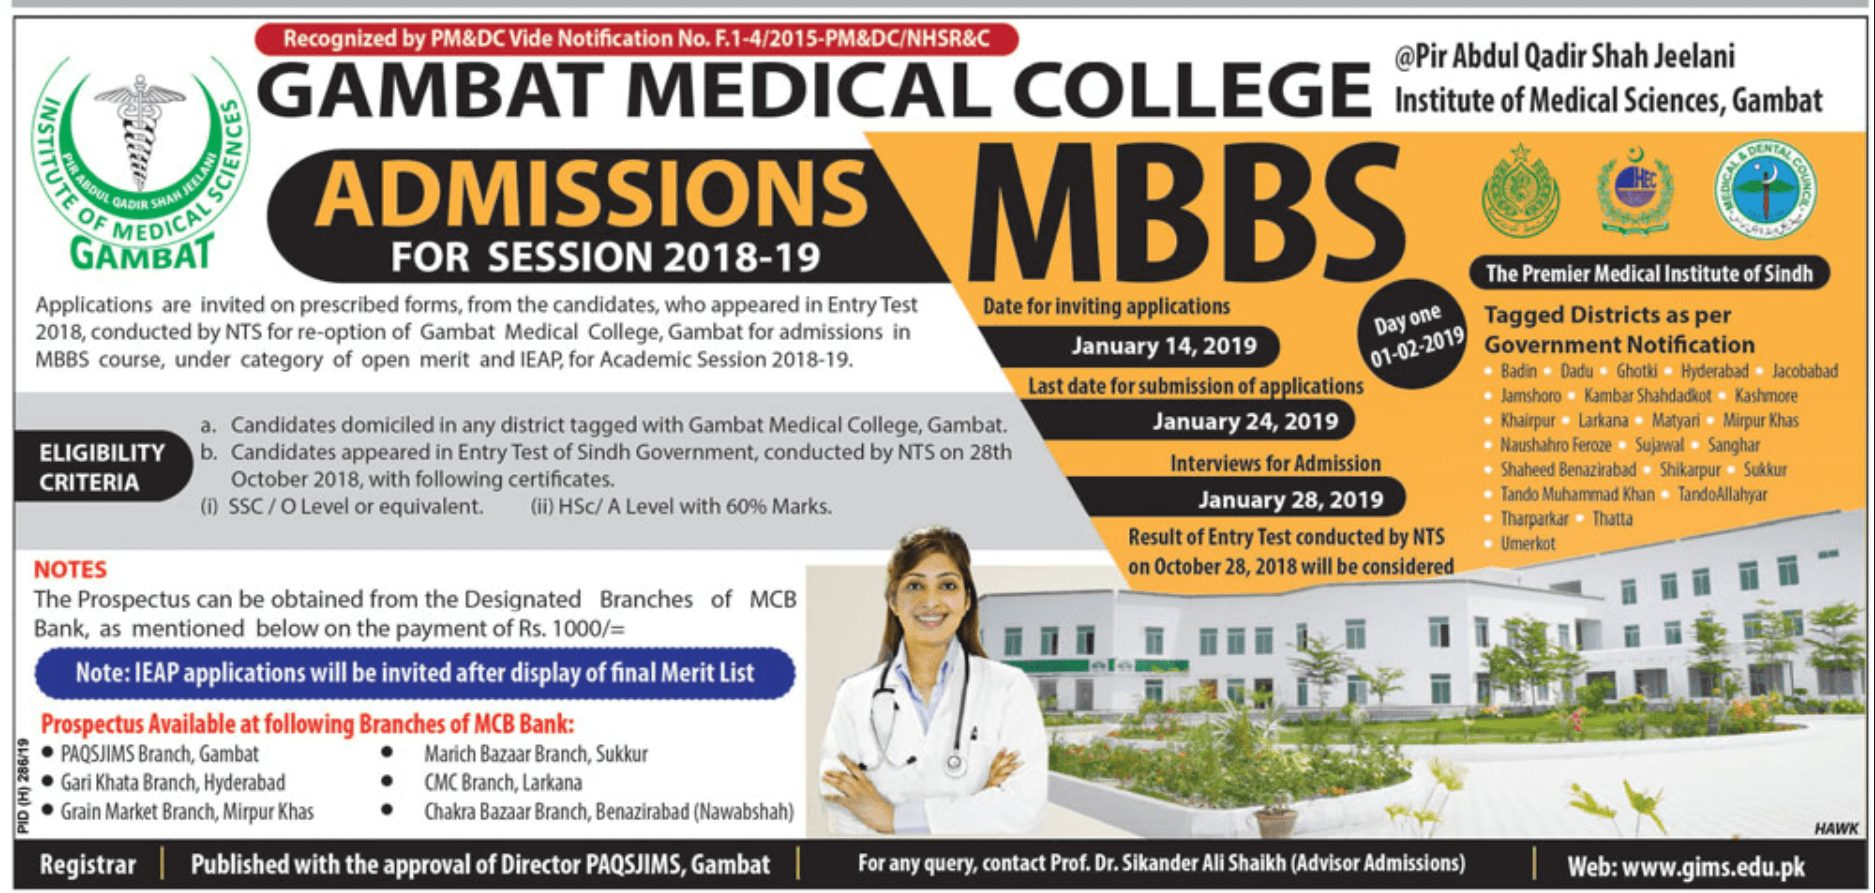 Gambat Medical College Admission 2019 Form Last Date